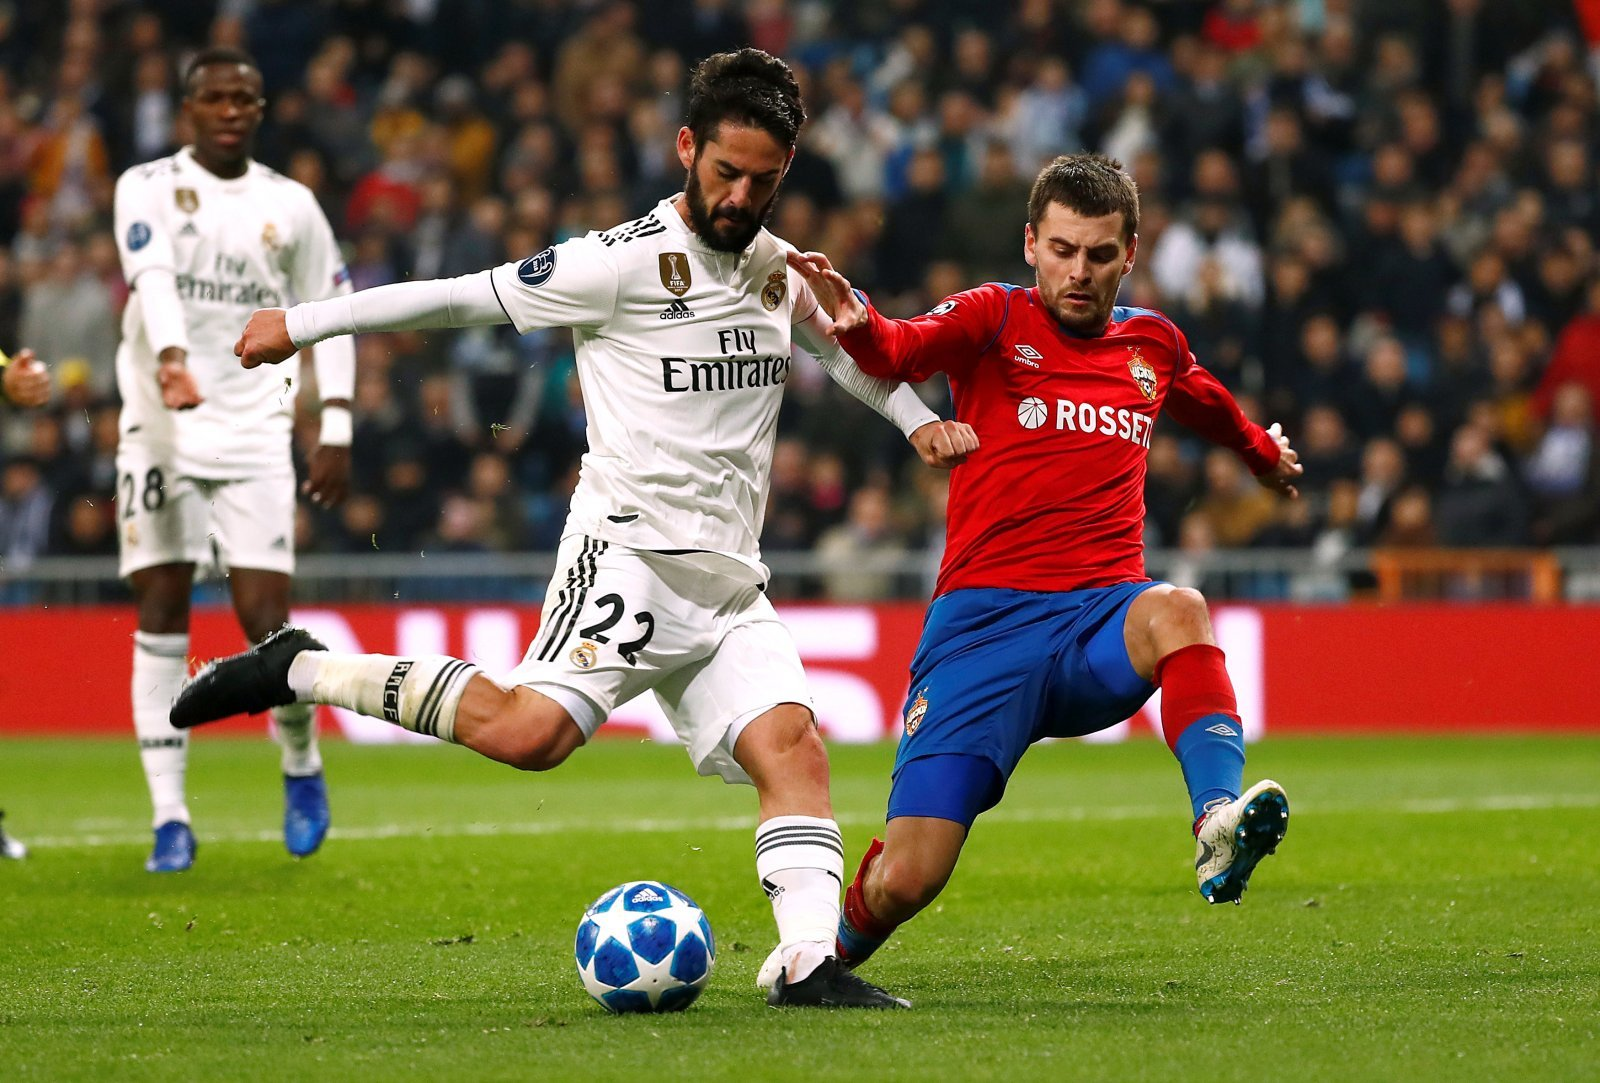 Daniel Levy surely won't get a better chance to lure Isco to Tottenham